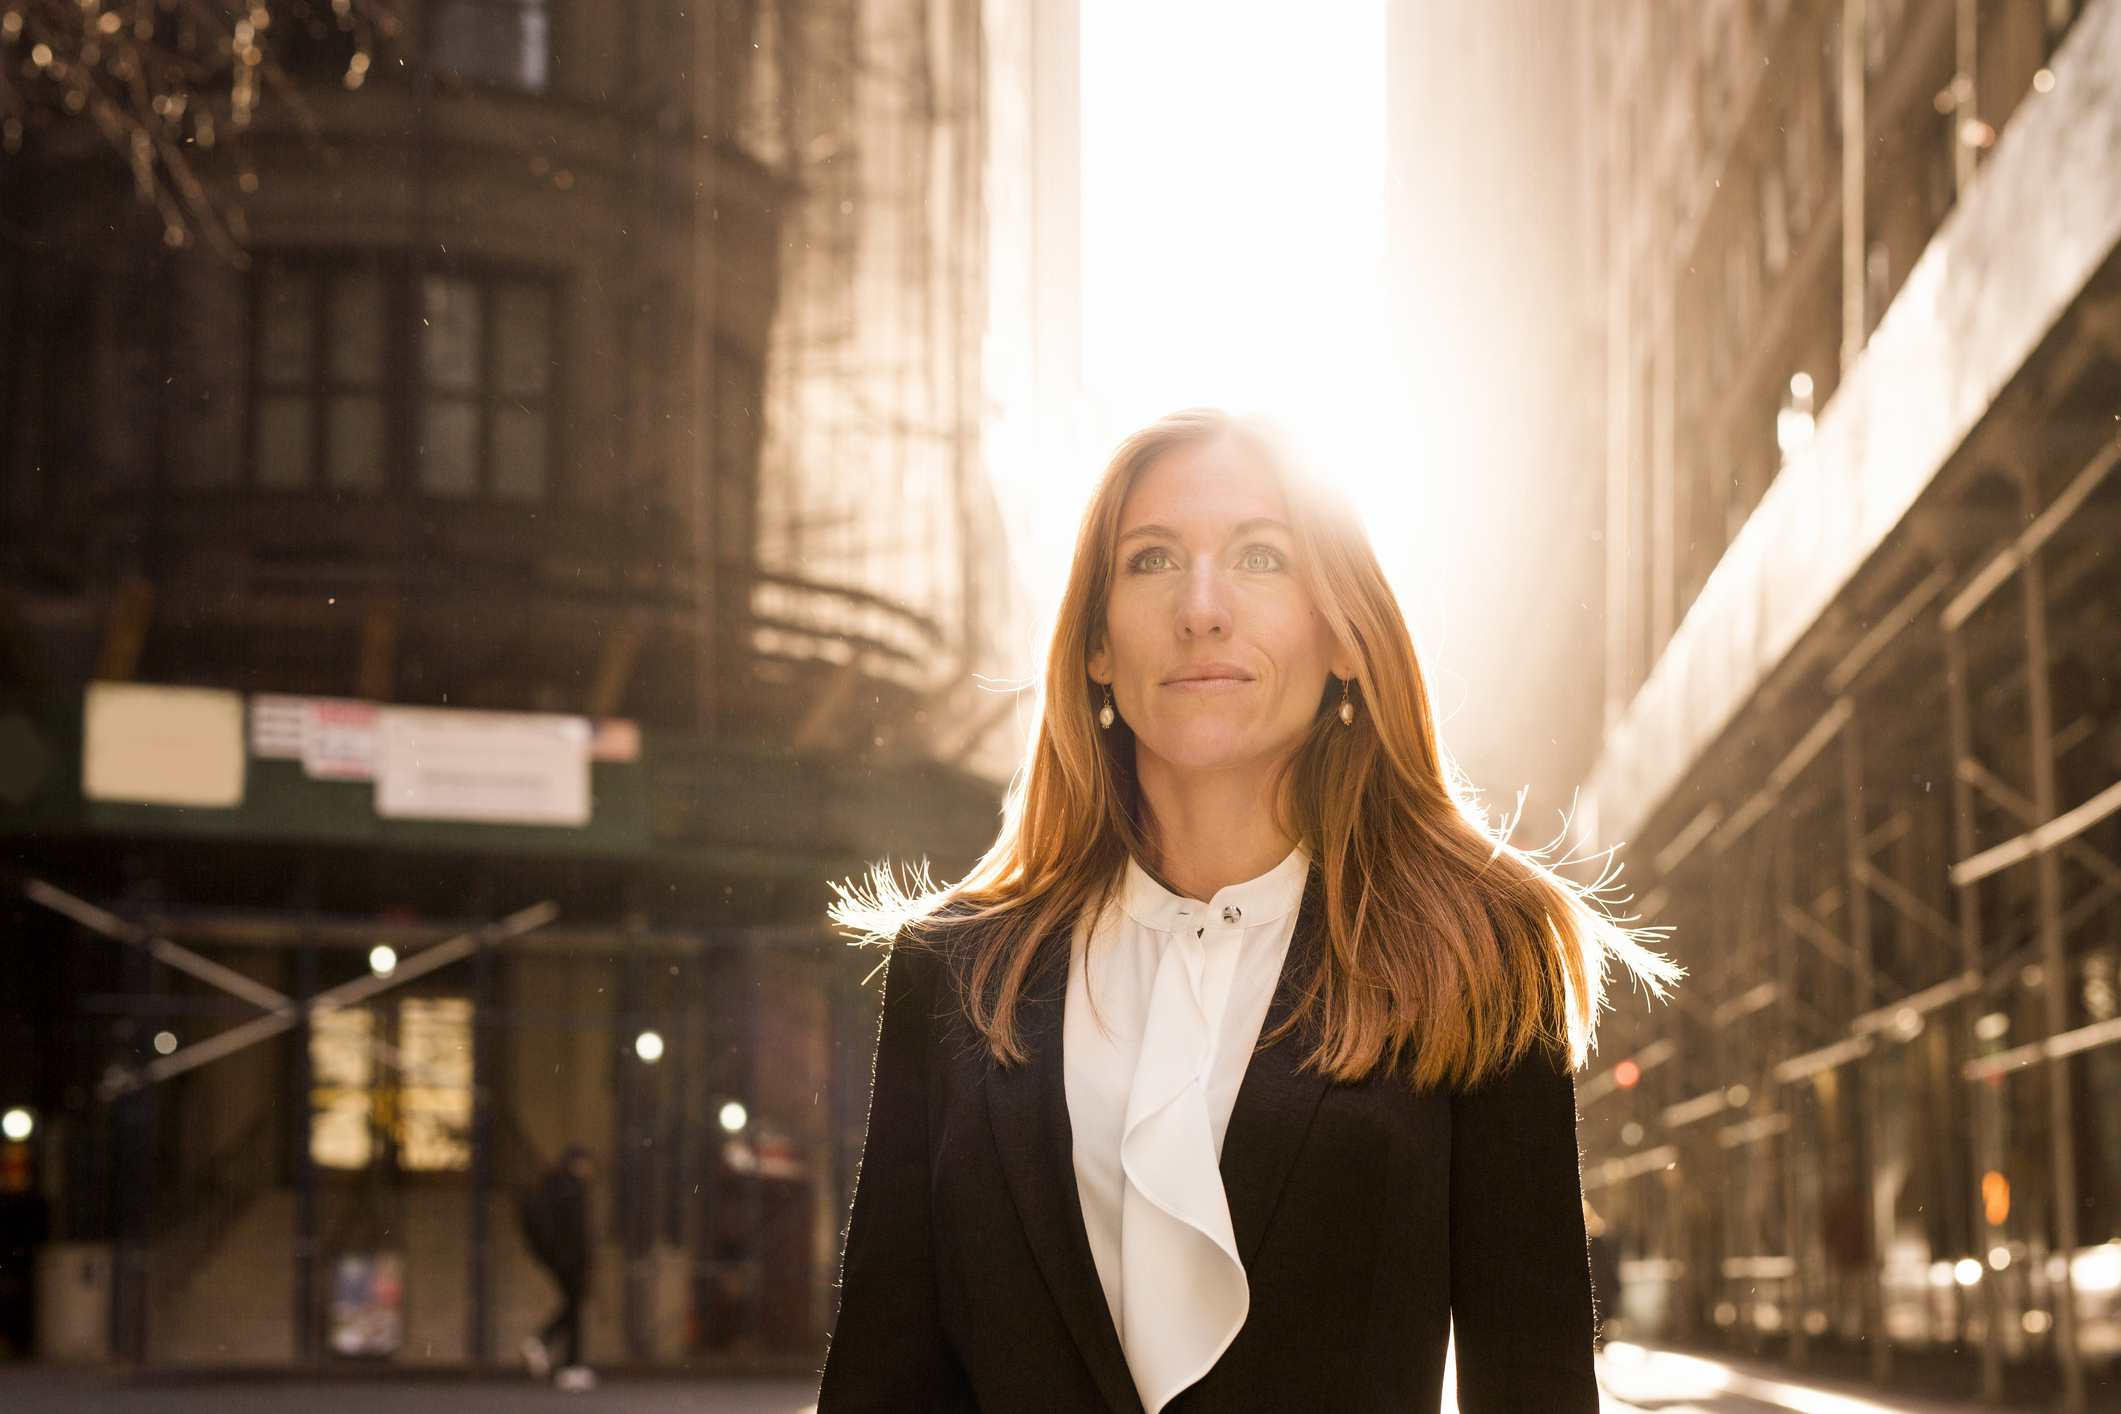 Businesswoman standing on city street with sunlight shining